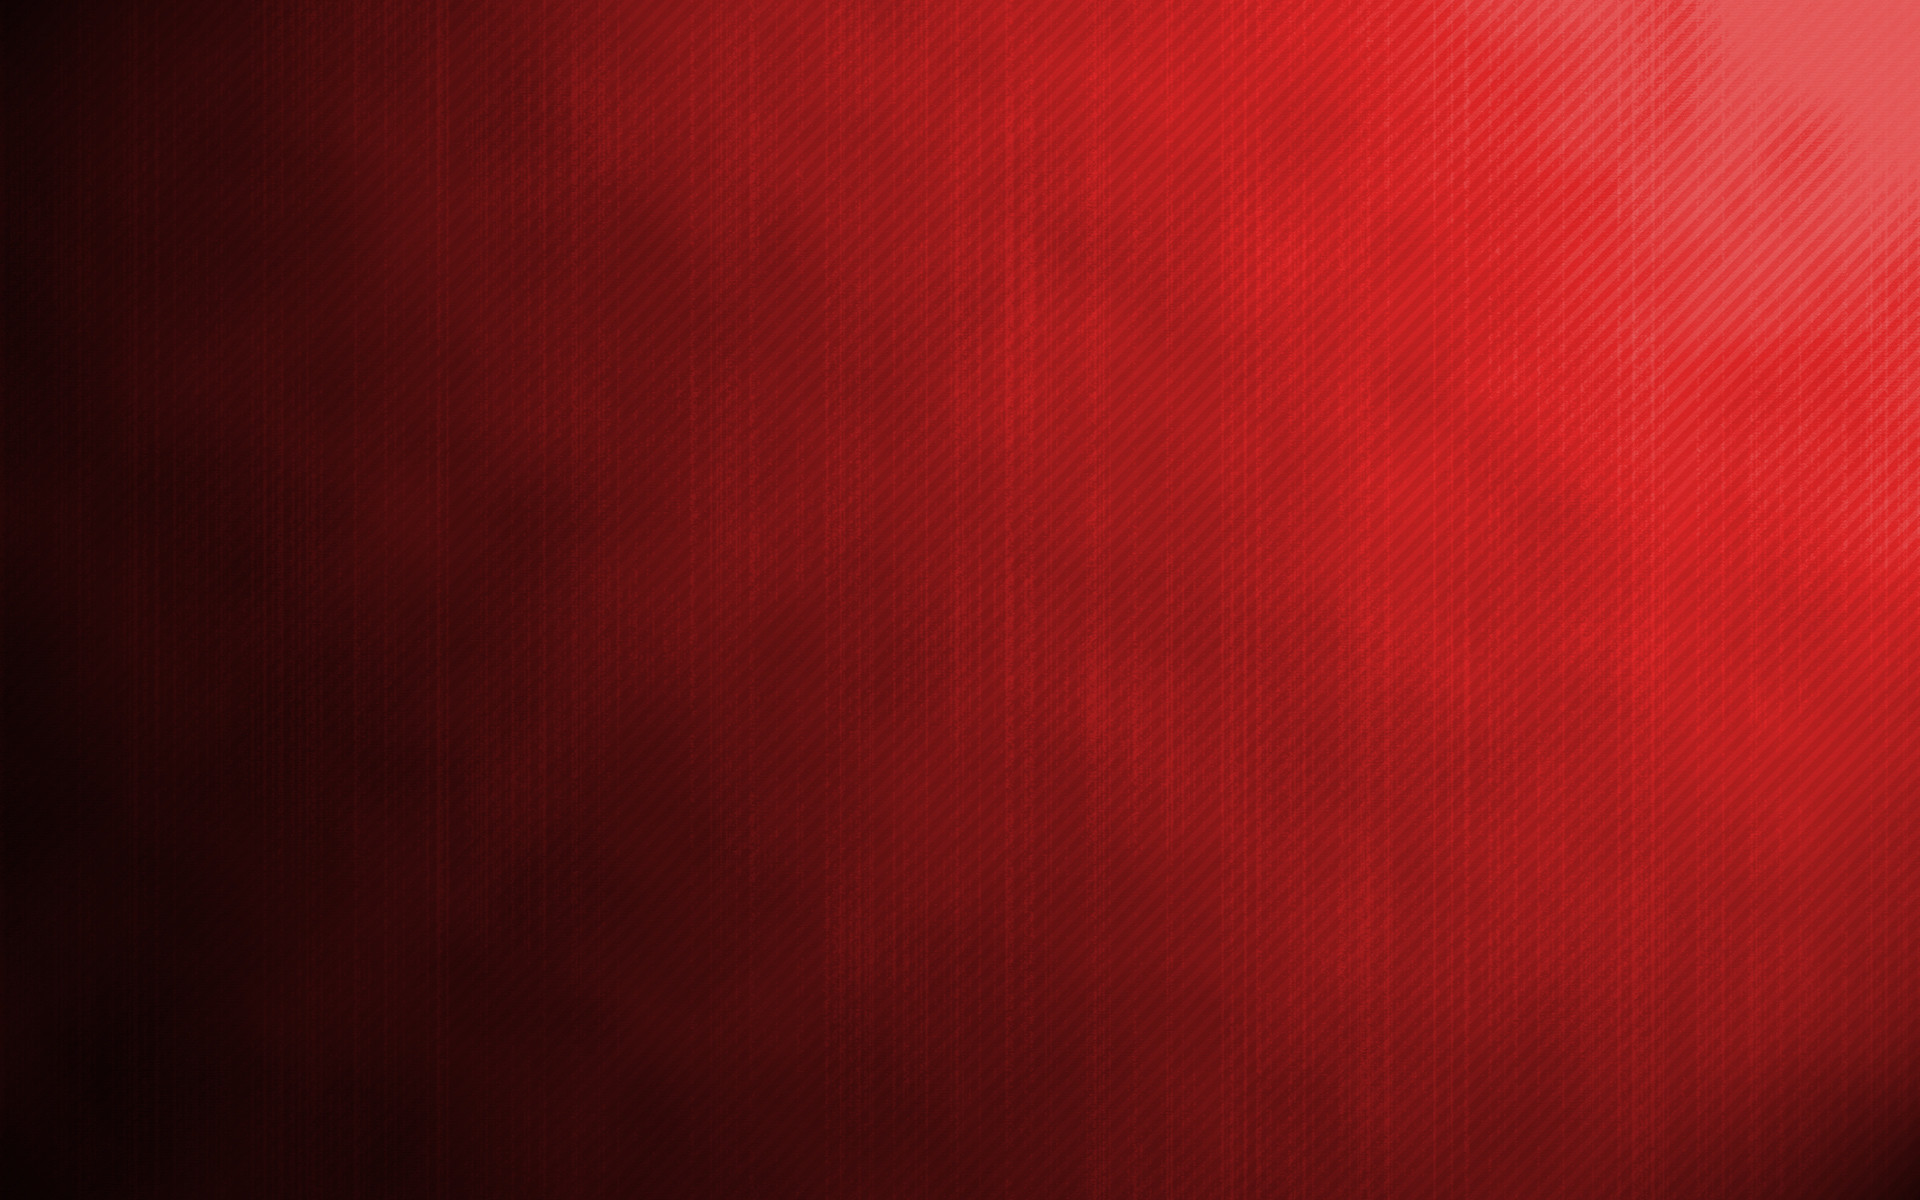 simply-red-backgrounds-wallpapers.jpg